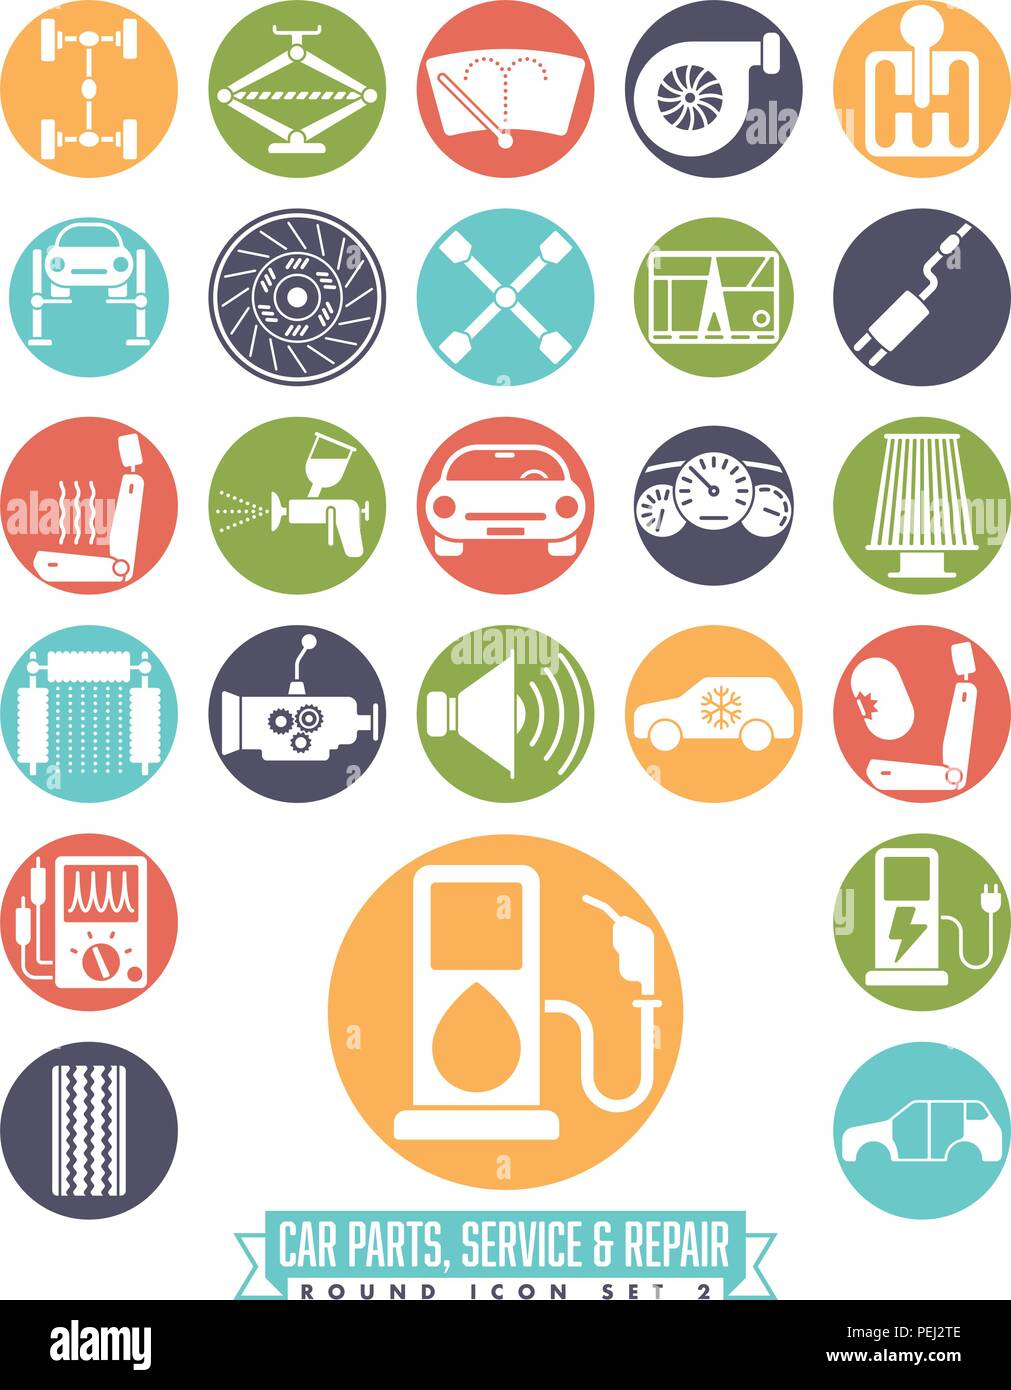 Collection Of Car Parts Service And Repair Icons In Colored Circles